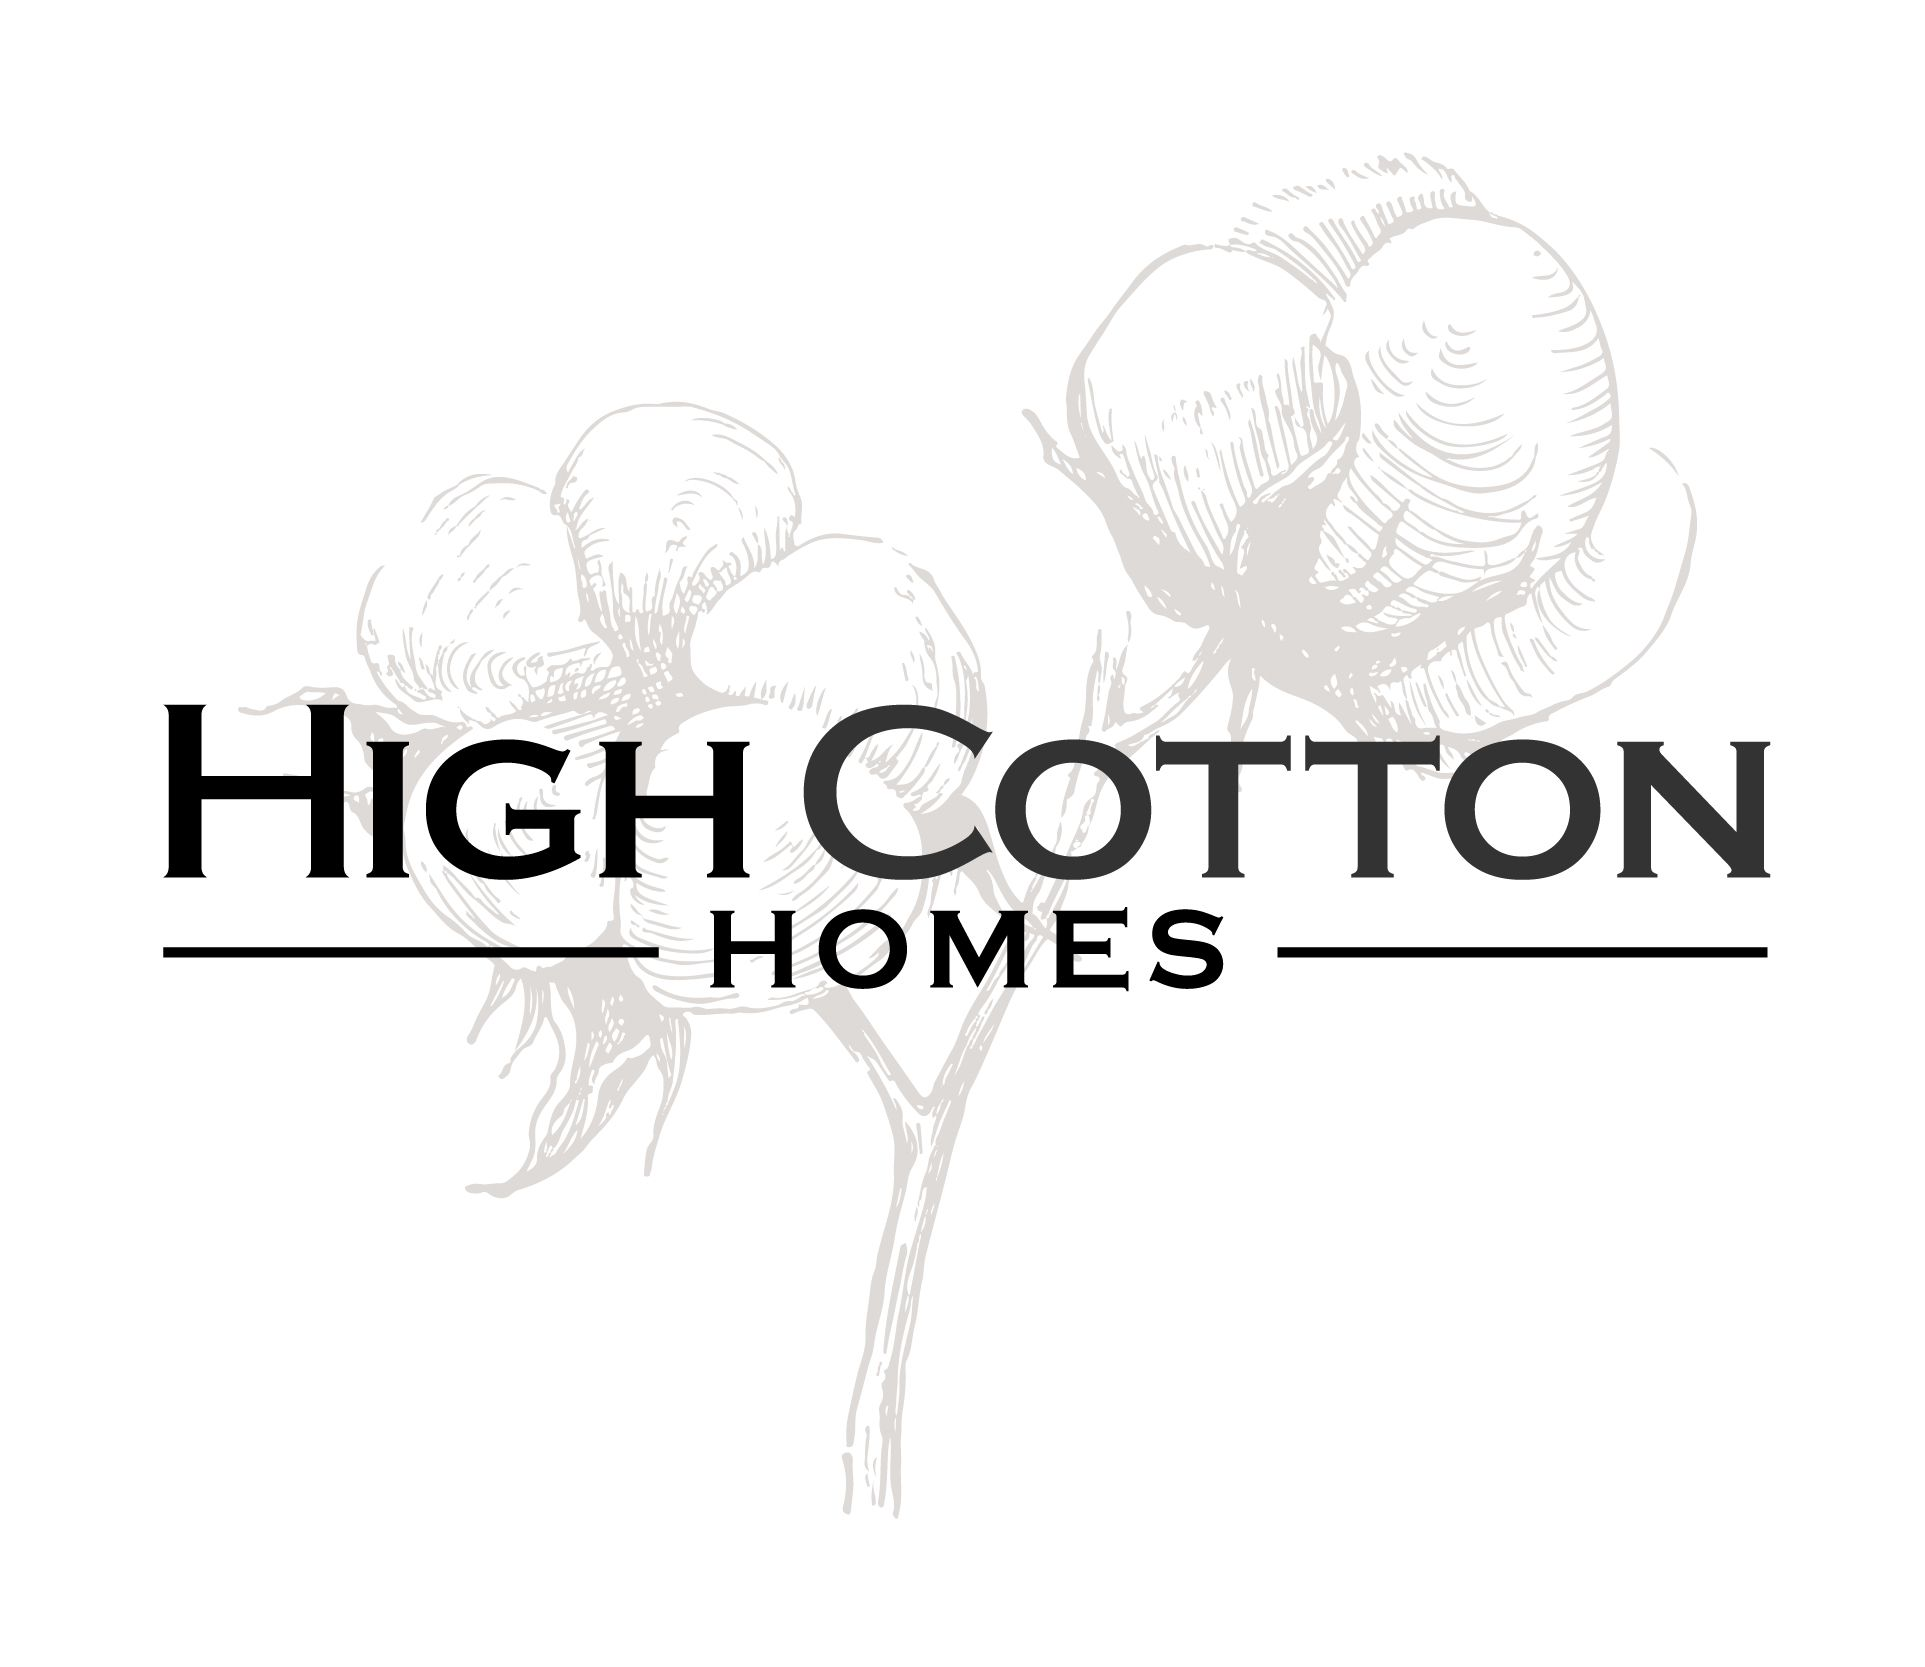 High Cotton Homes